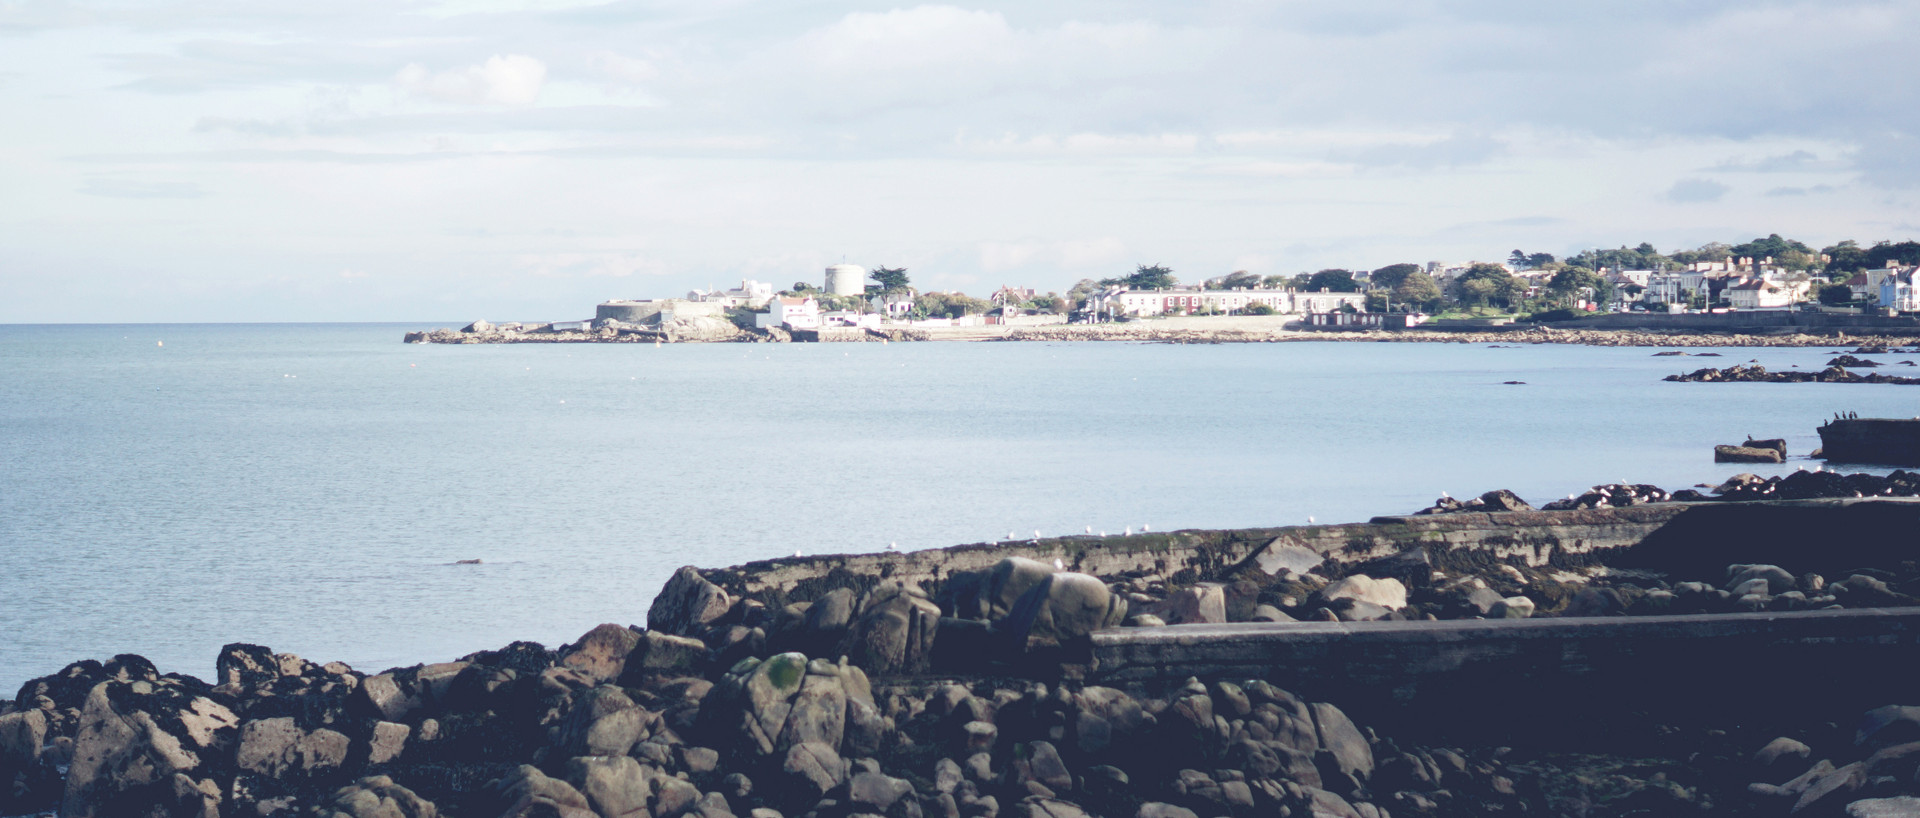 Views of Dun Laoghaire bay